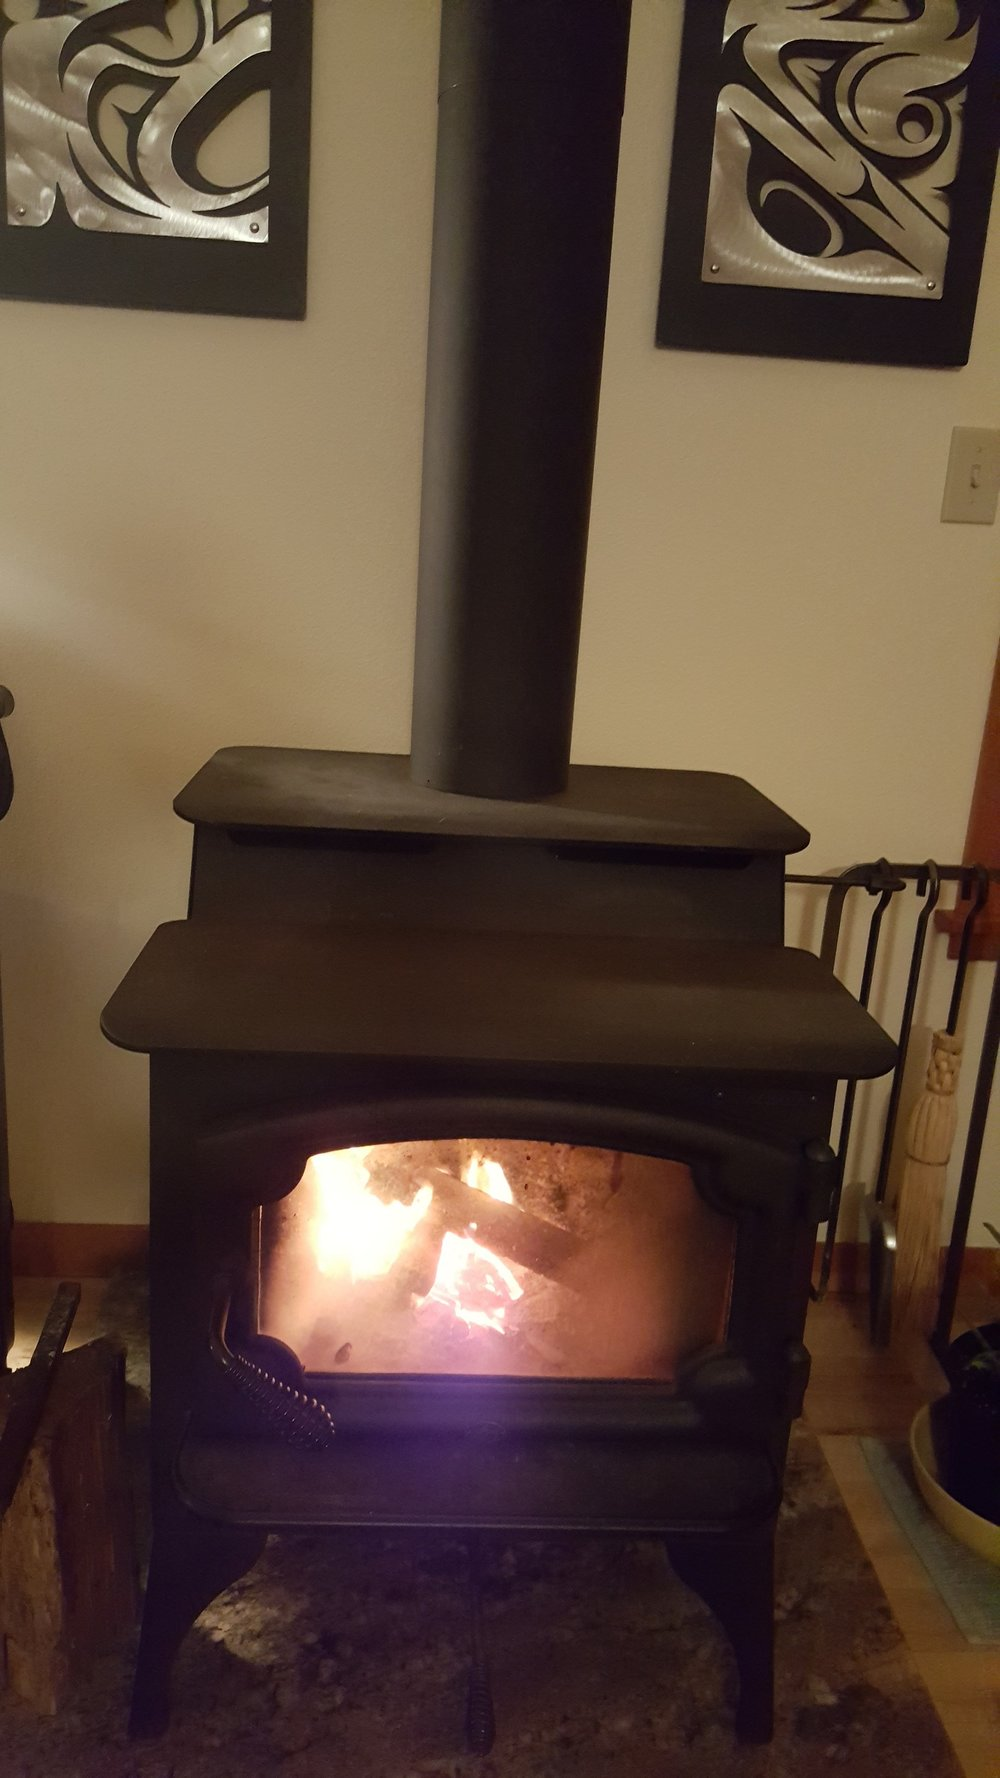 Heat stove to keep warm